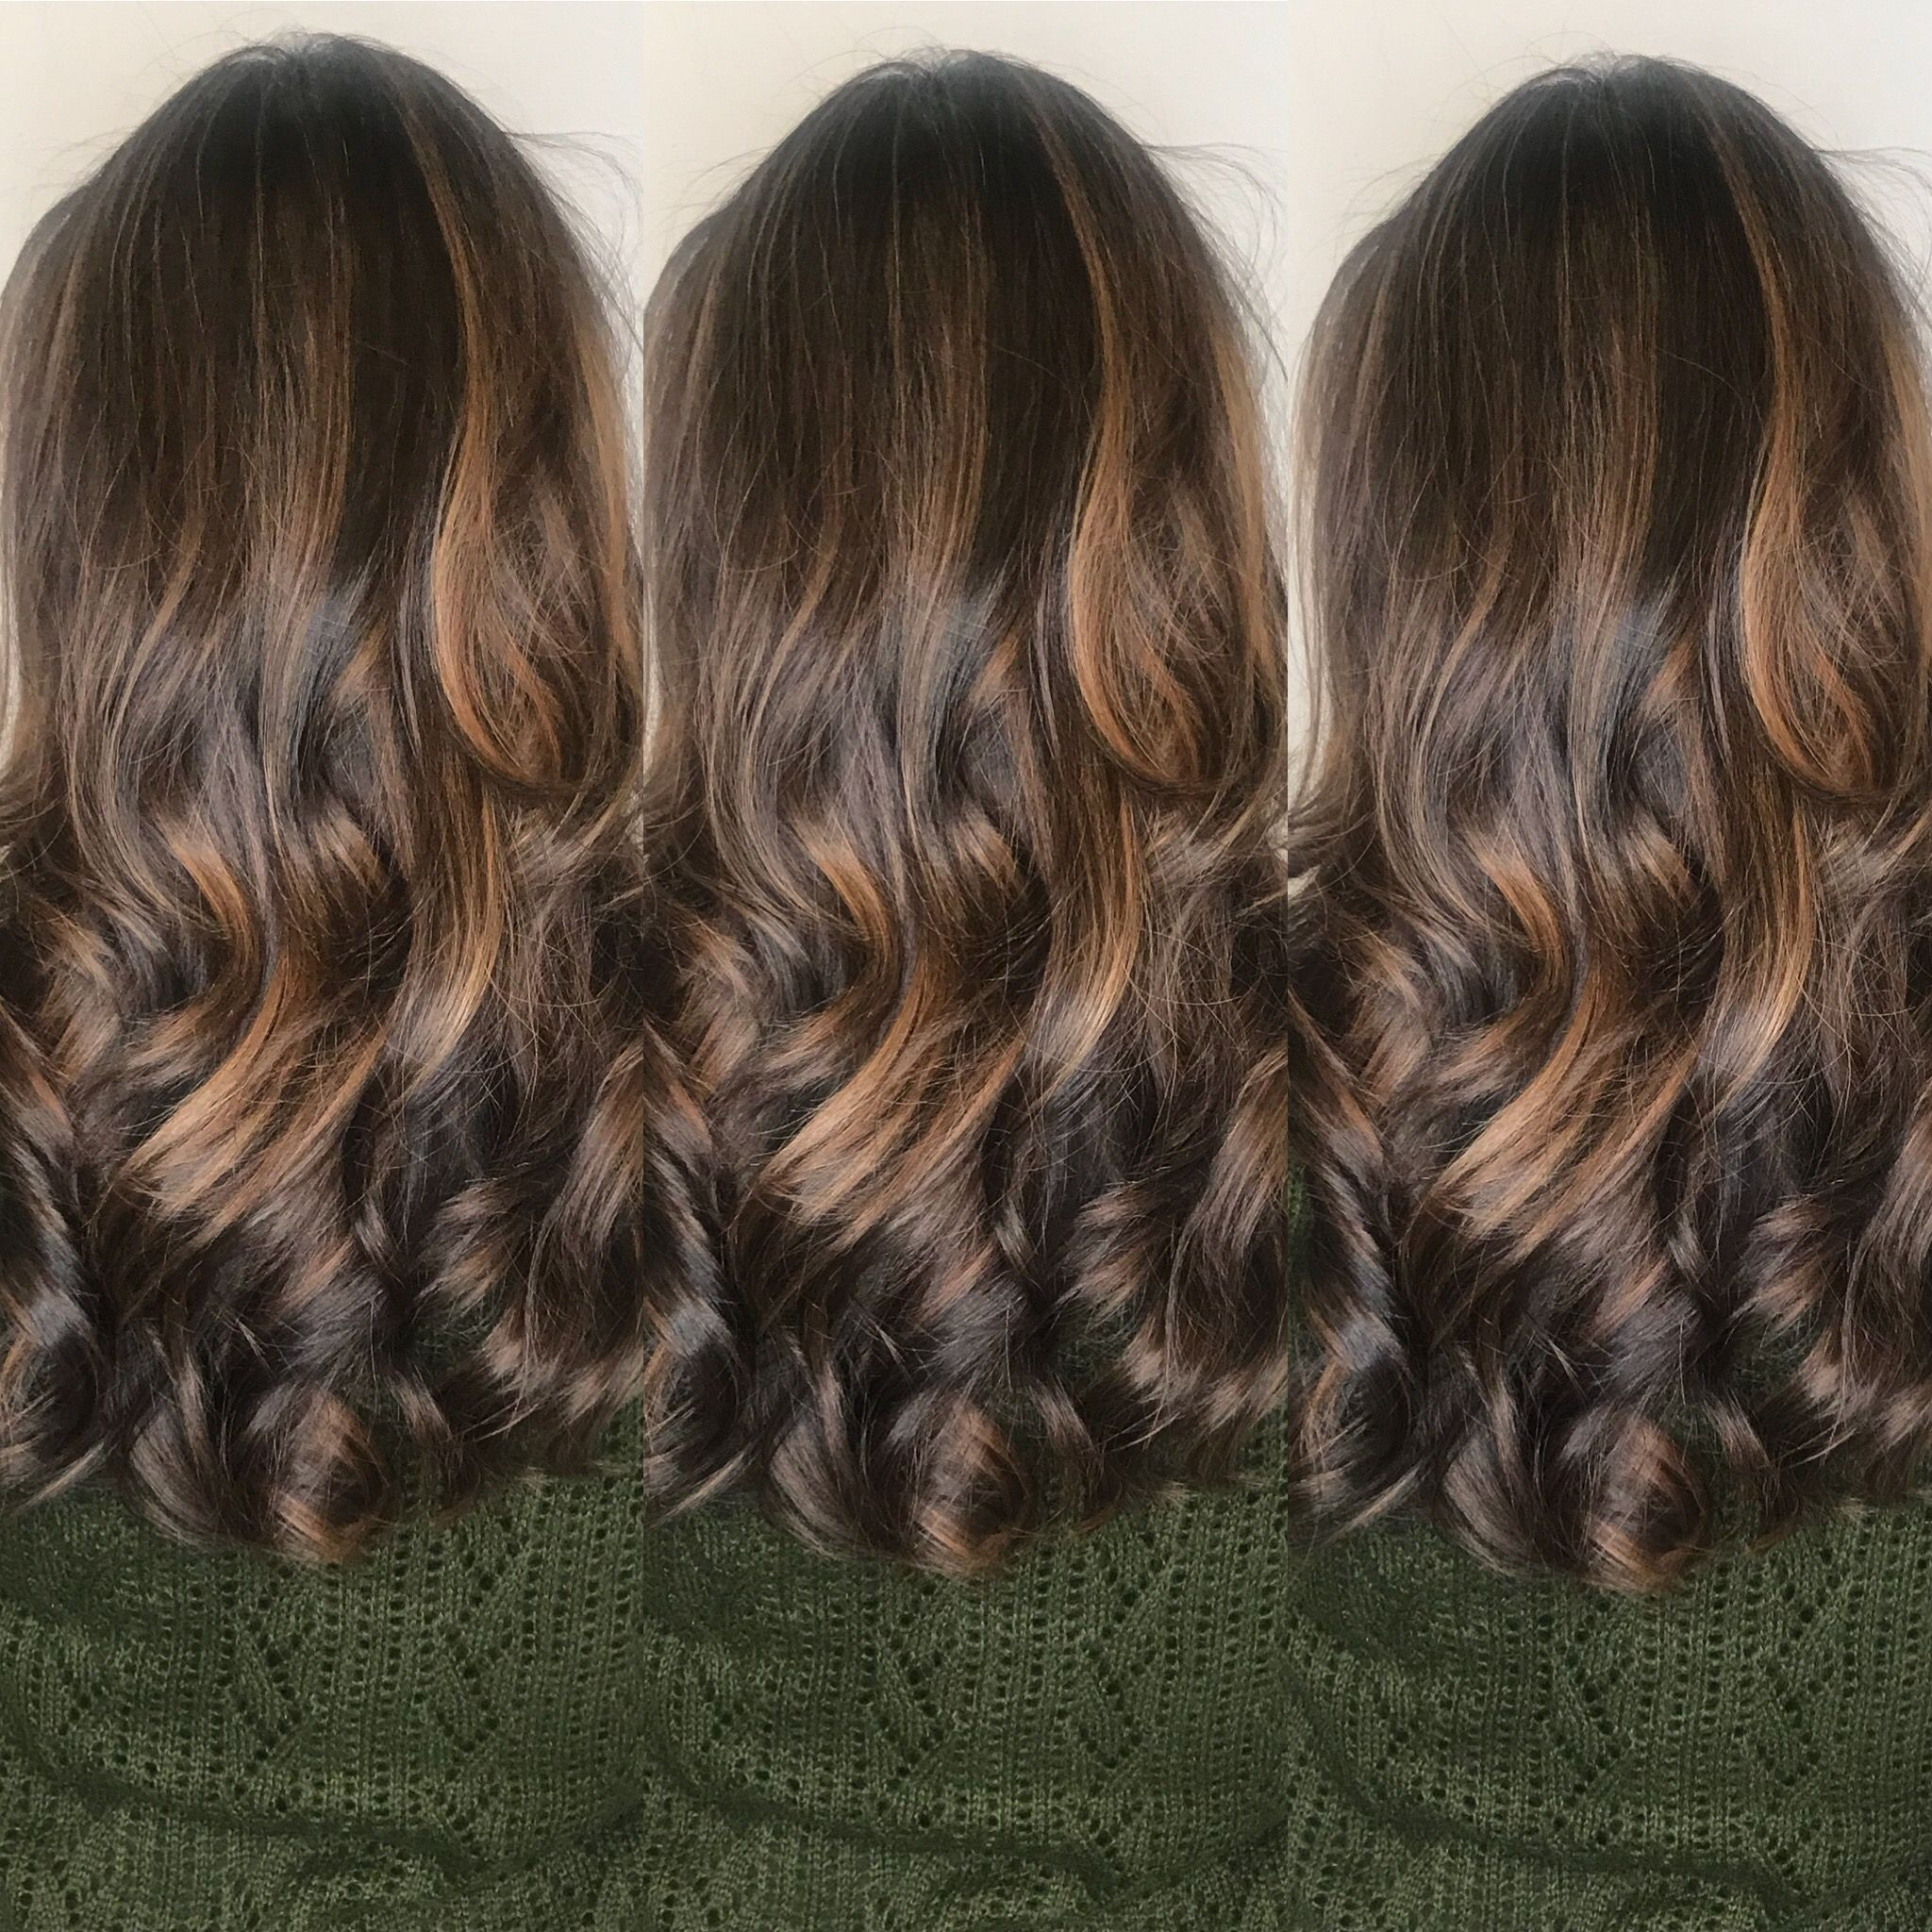 Long Layers Balayage Brunette Natural Warm Carmel Colors Curly Hair Dallas Texas Courtney Littlejohn Colored Curly Hair Curly Hair Styles Hair Styles